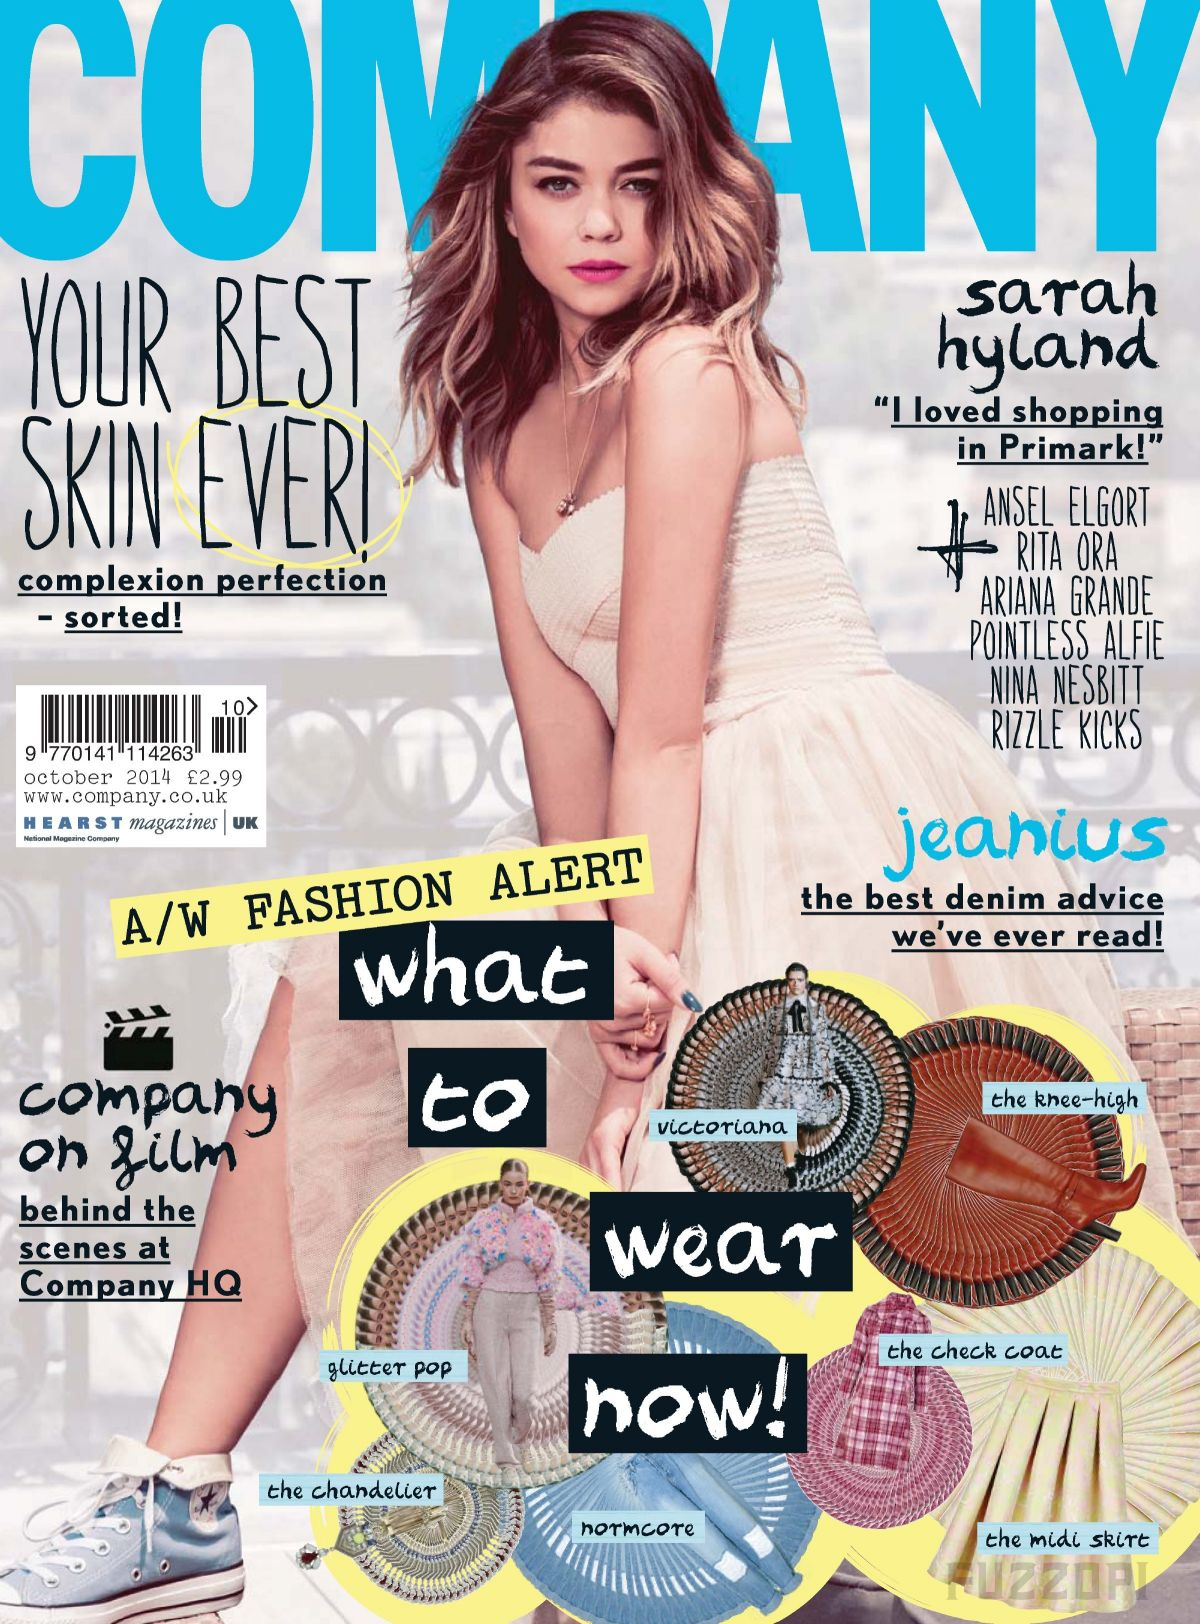 SARAH HYLAND on the Cover of Company Magazine, October 2014 Issue